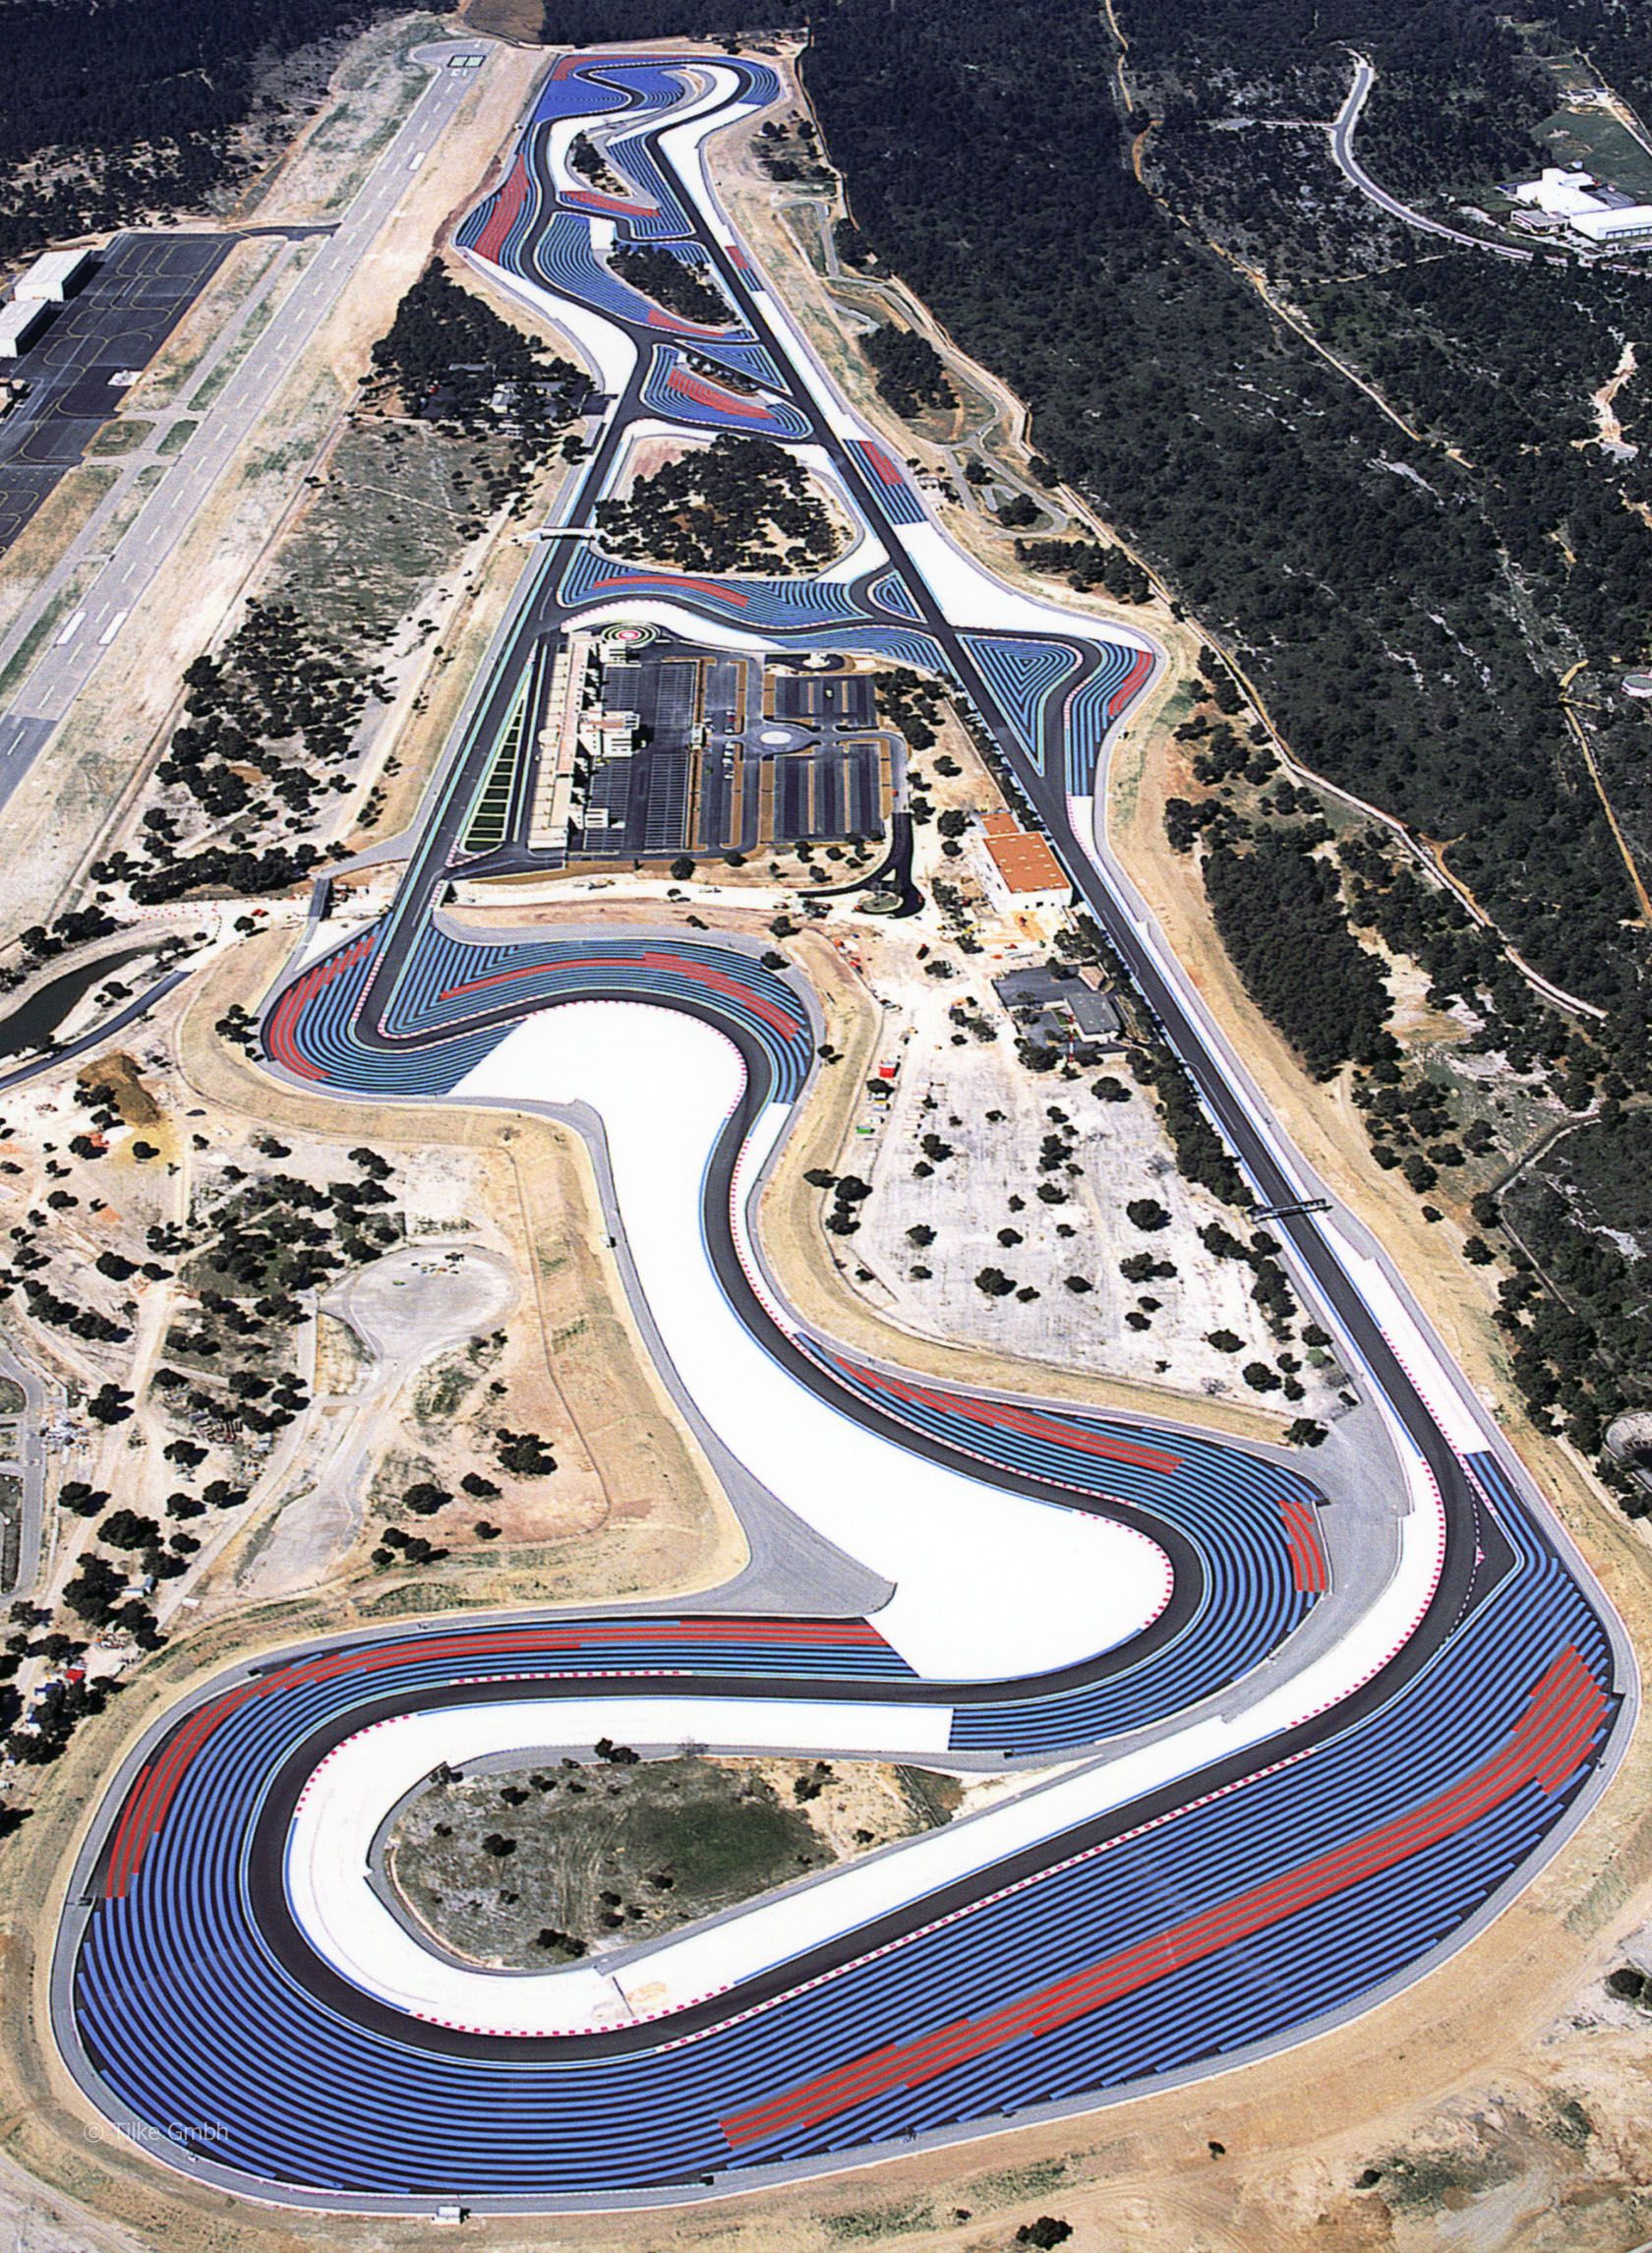 Le Castellet Circuit : Le castellet paul ricard france circuits of the world